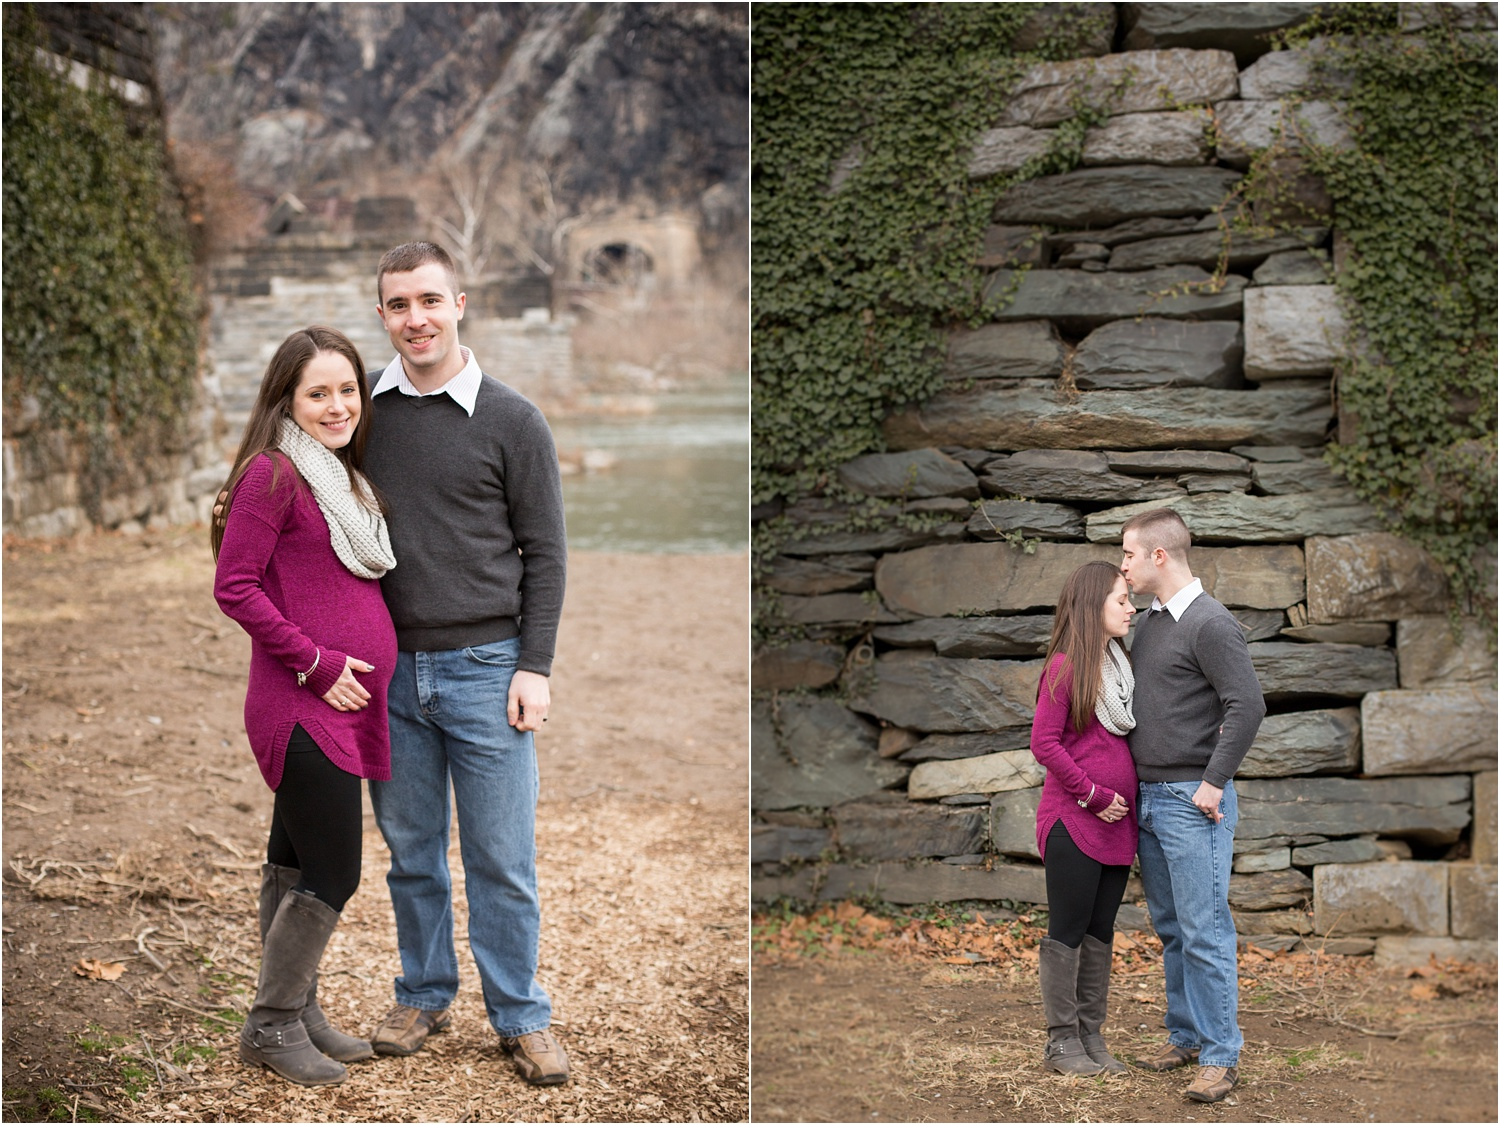 Kuklis_Harrisonburg_Va_Family_Photography_0005.jpg